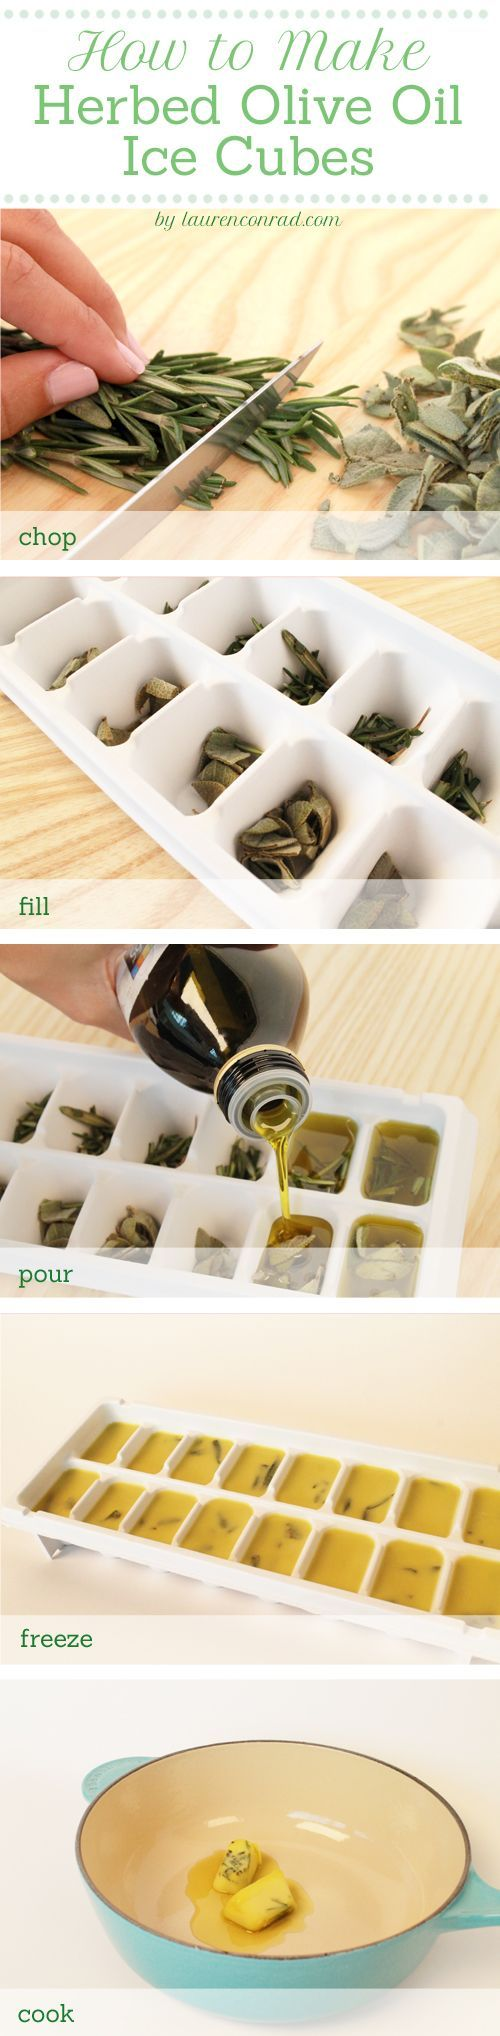 Herb ice cubes